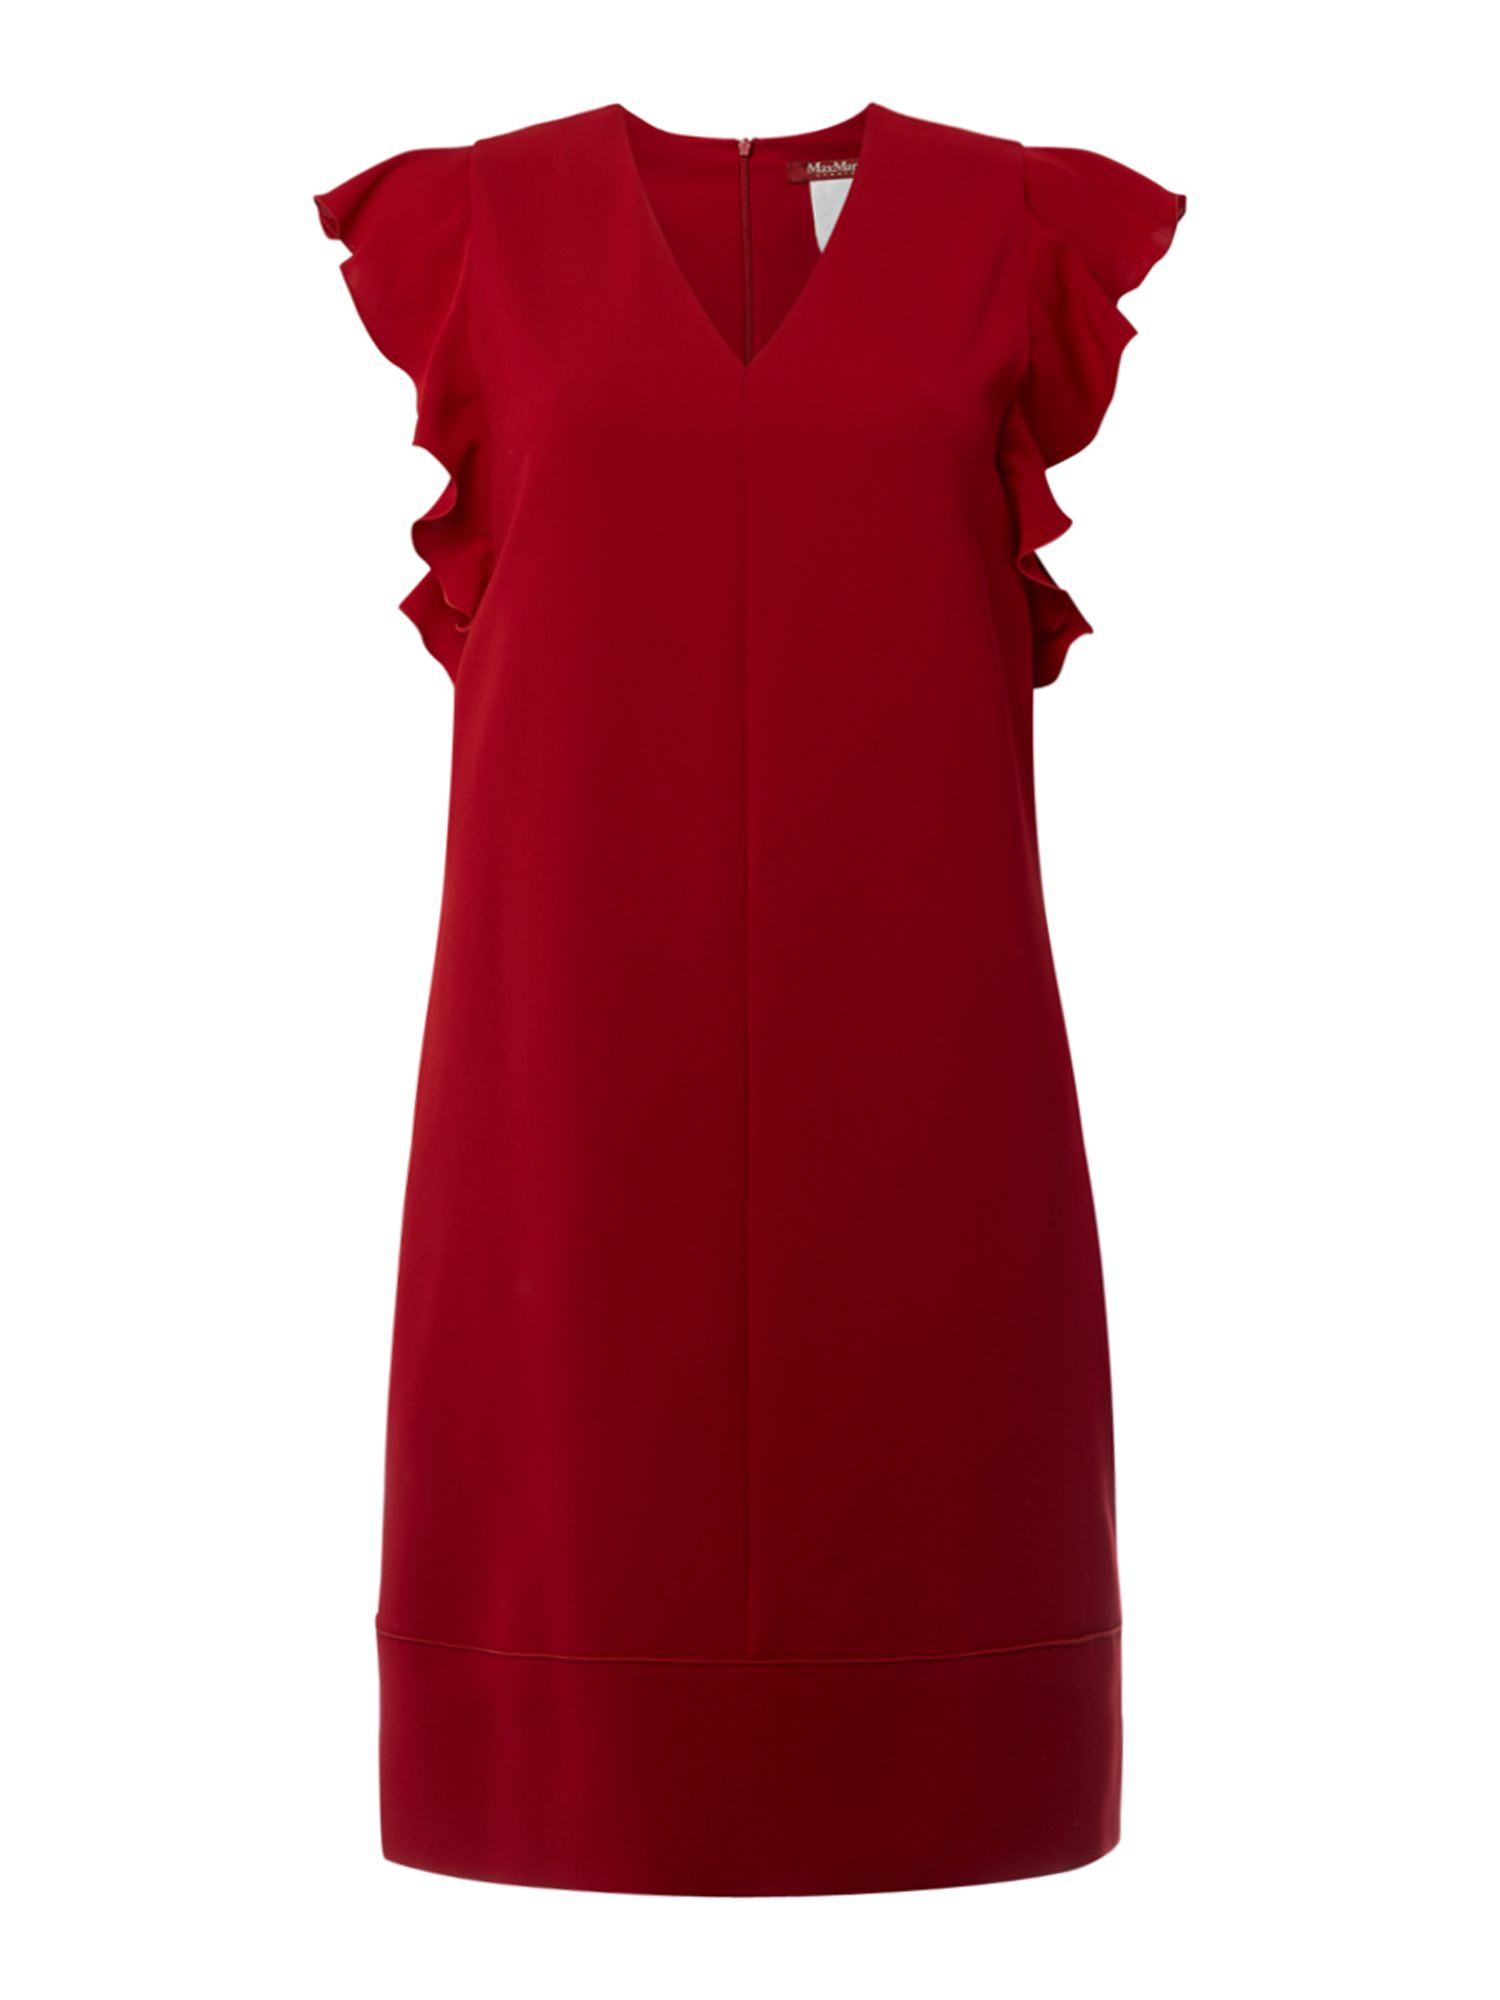 Max Mara Studio Trofeo ruffle sleeve shift dress, Red